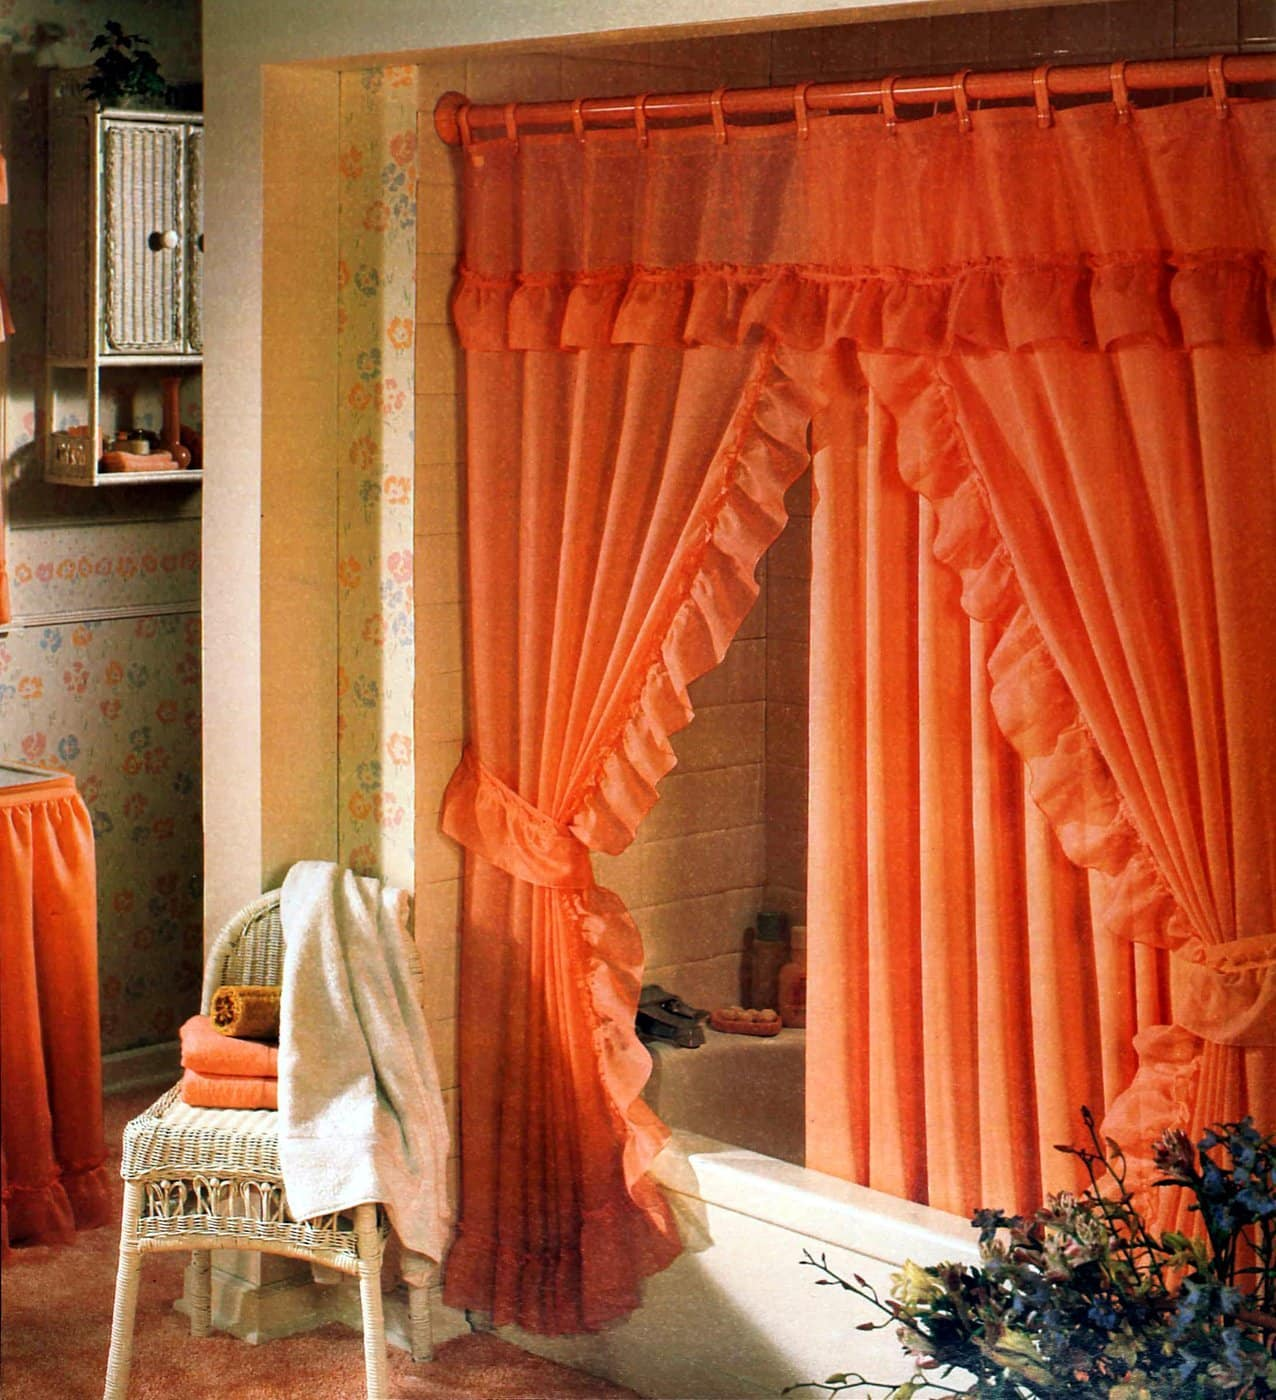 Retro 1980s orange bathroom decor and frilly curtains